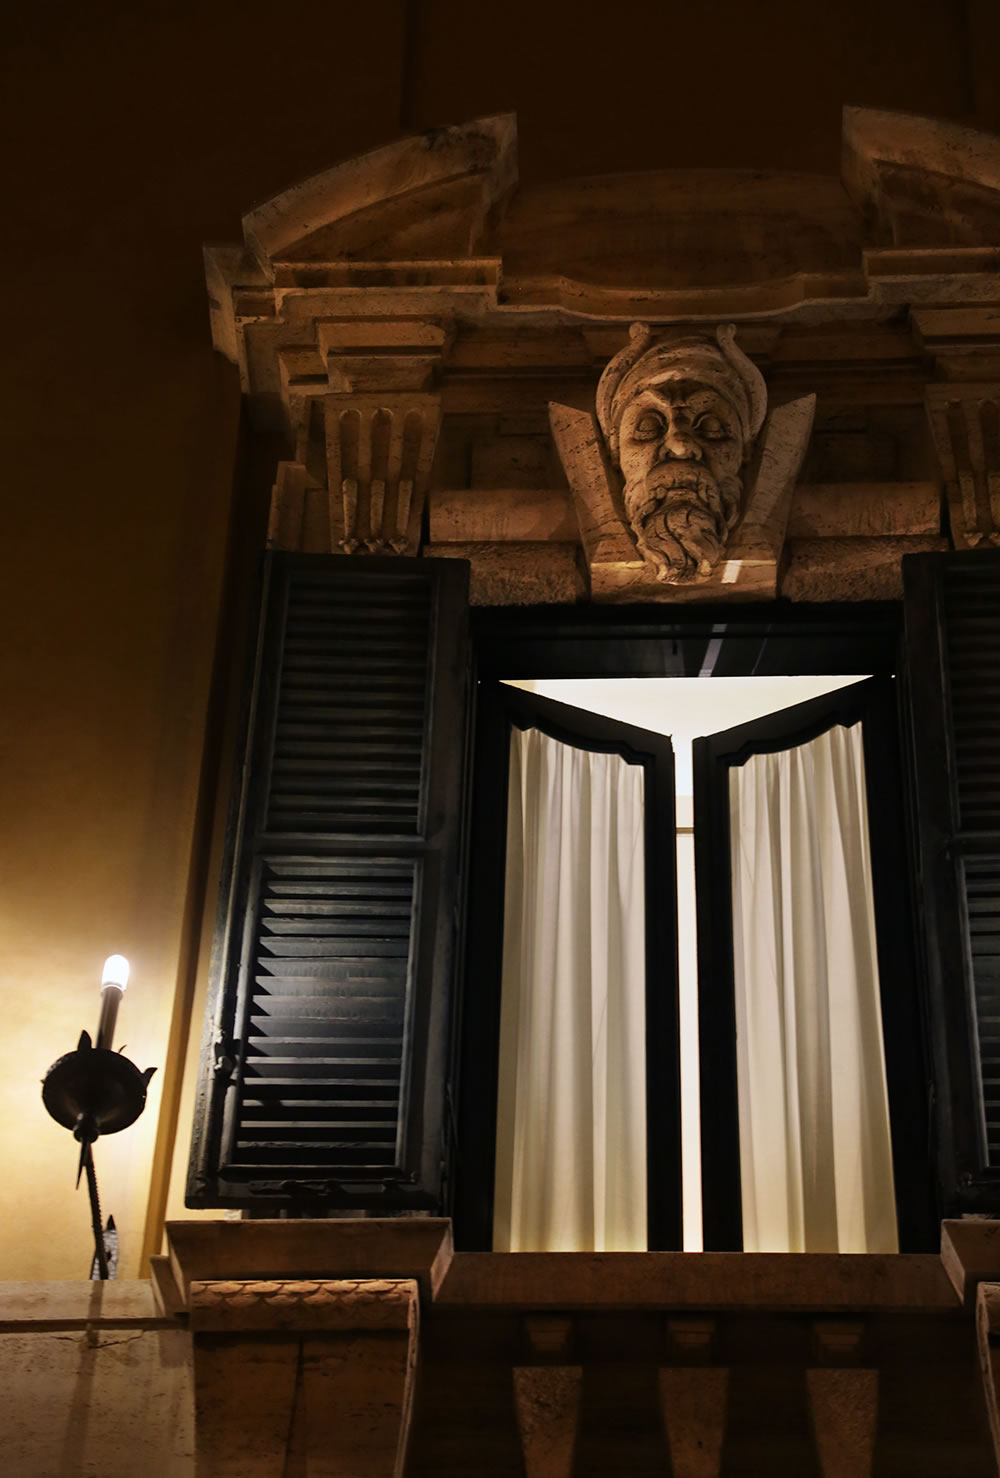 Standing guard over an open window in Rome.